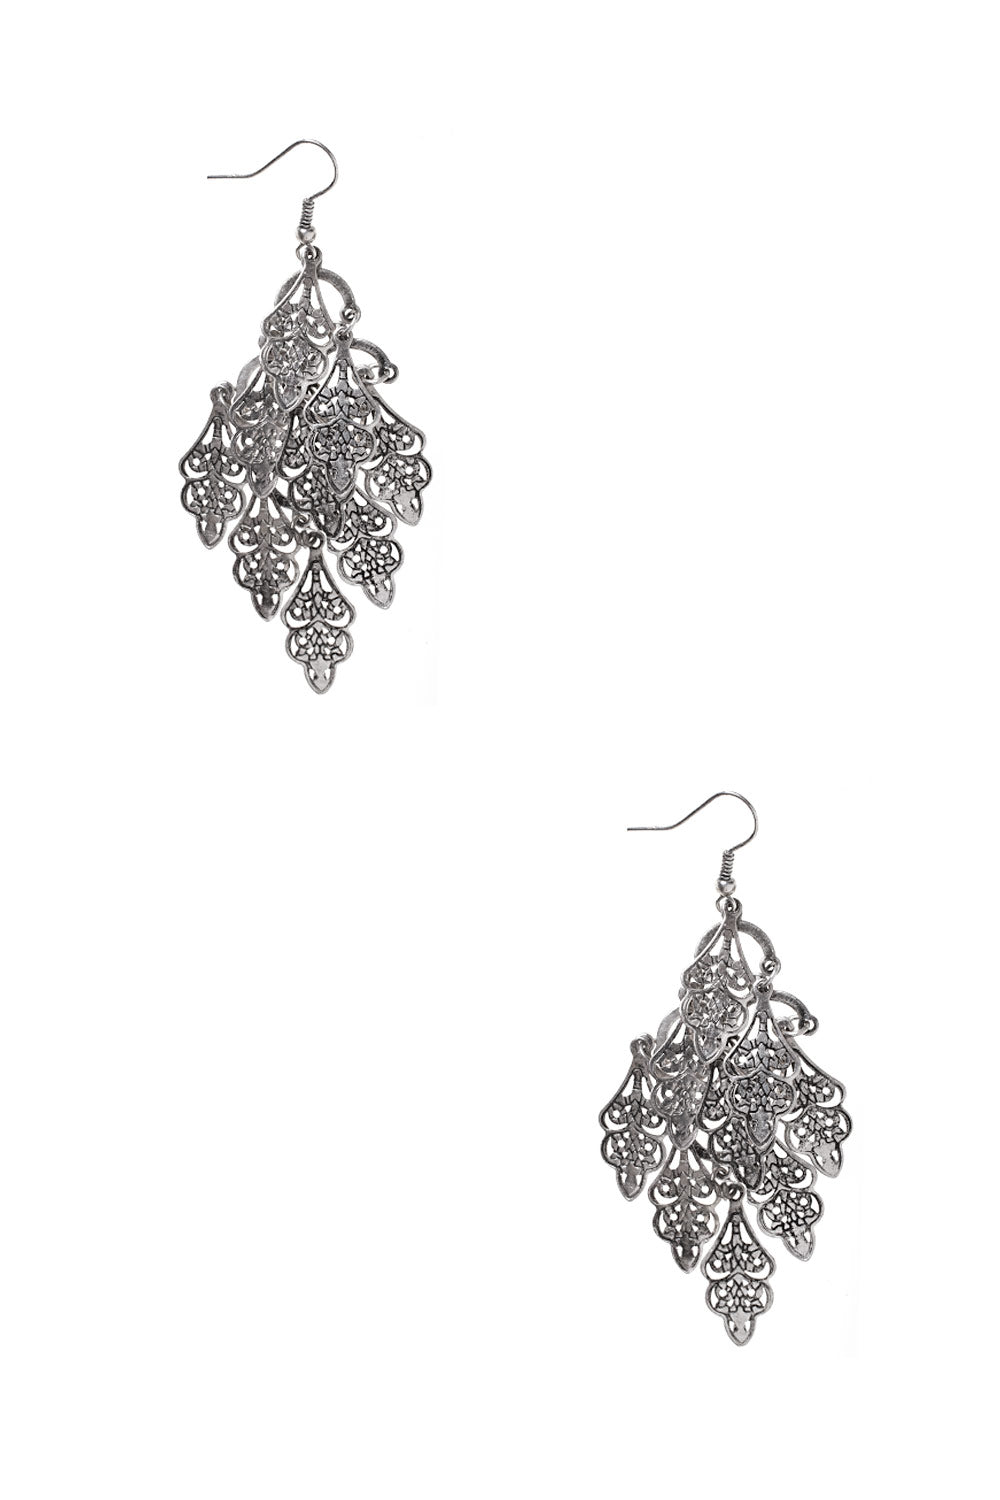 Type 2 Tarnished Memories Earrings